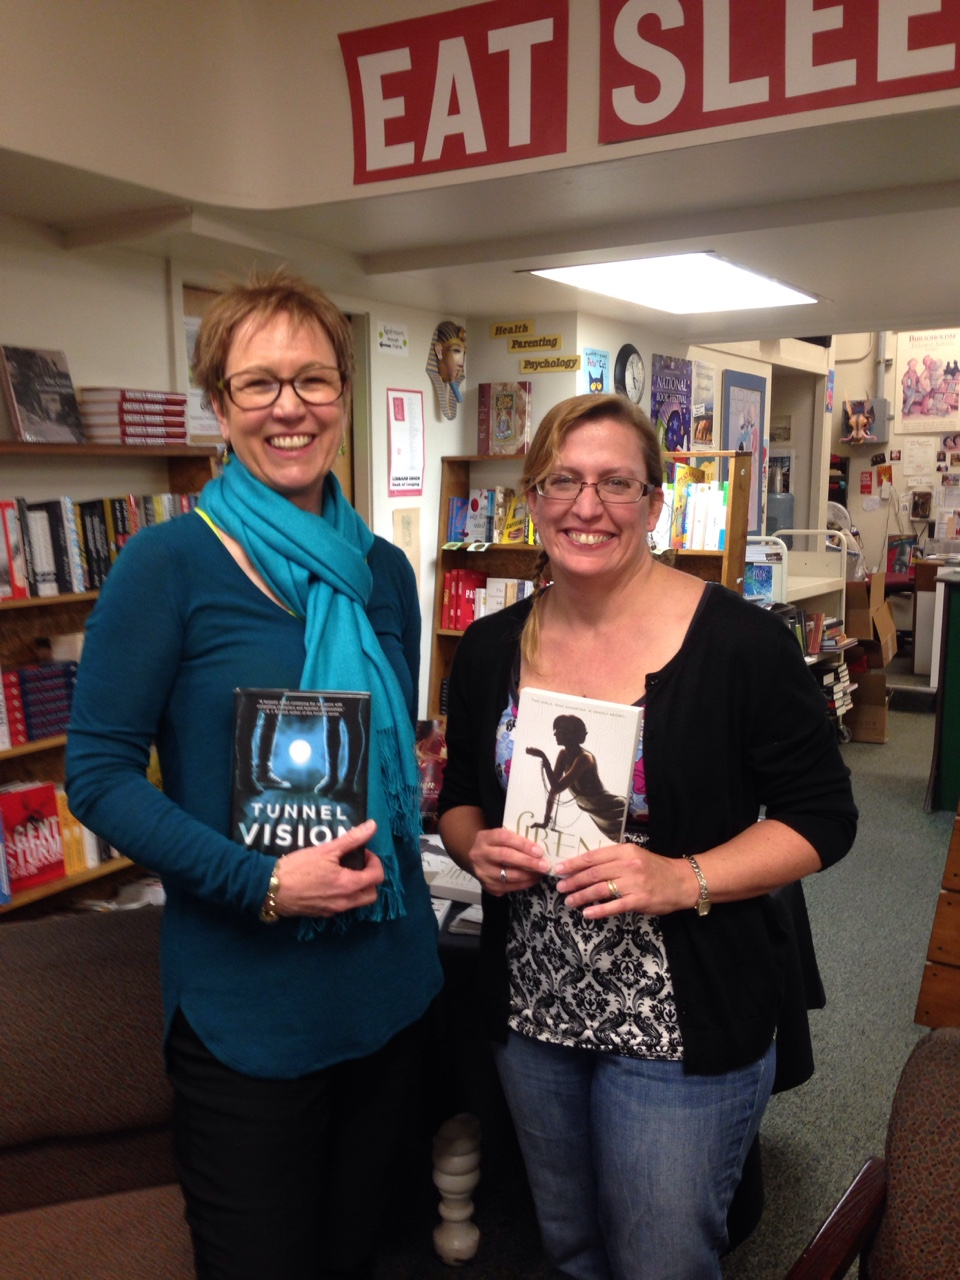 janet fox and me in missoula!